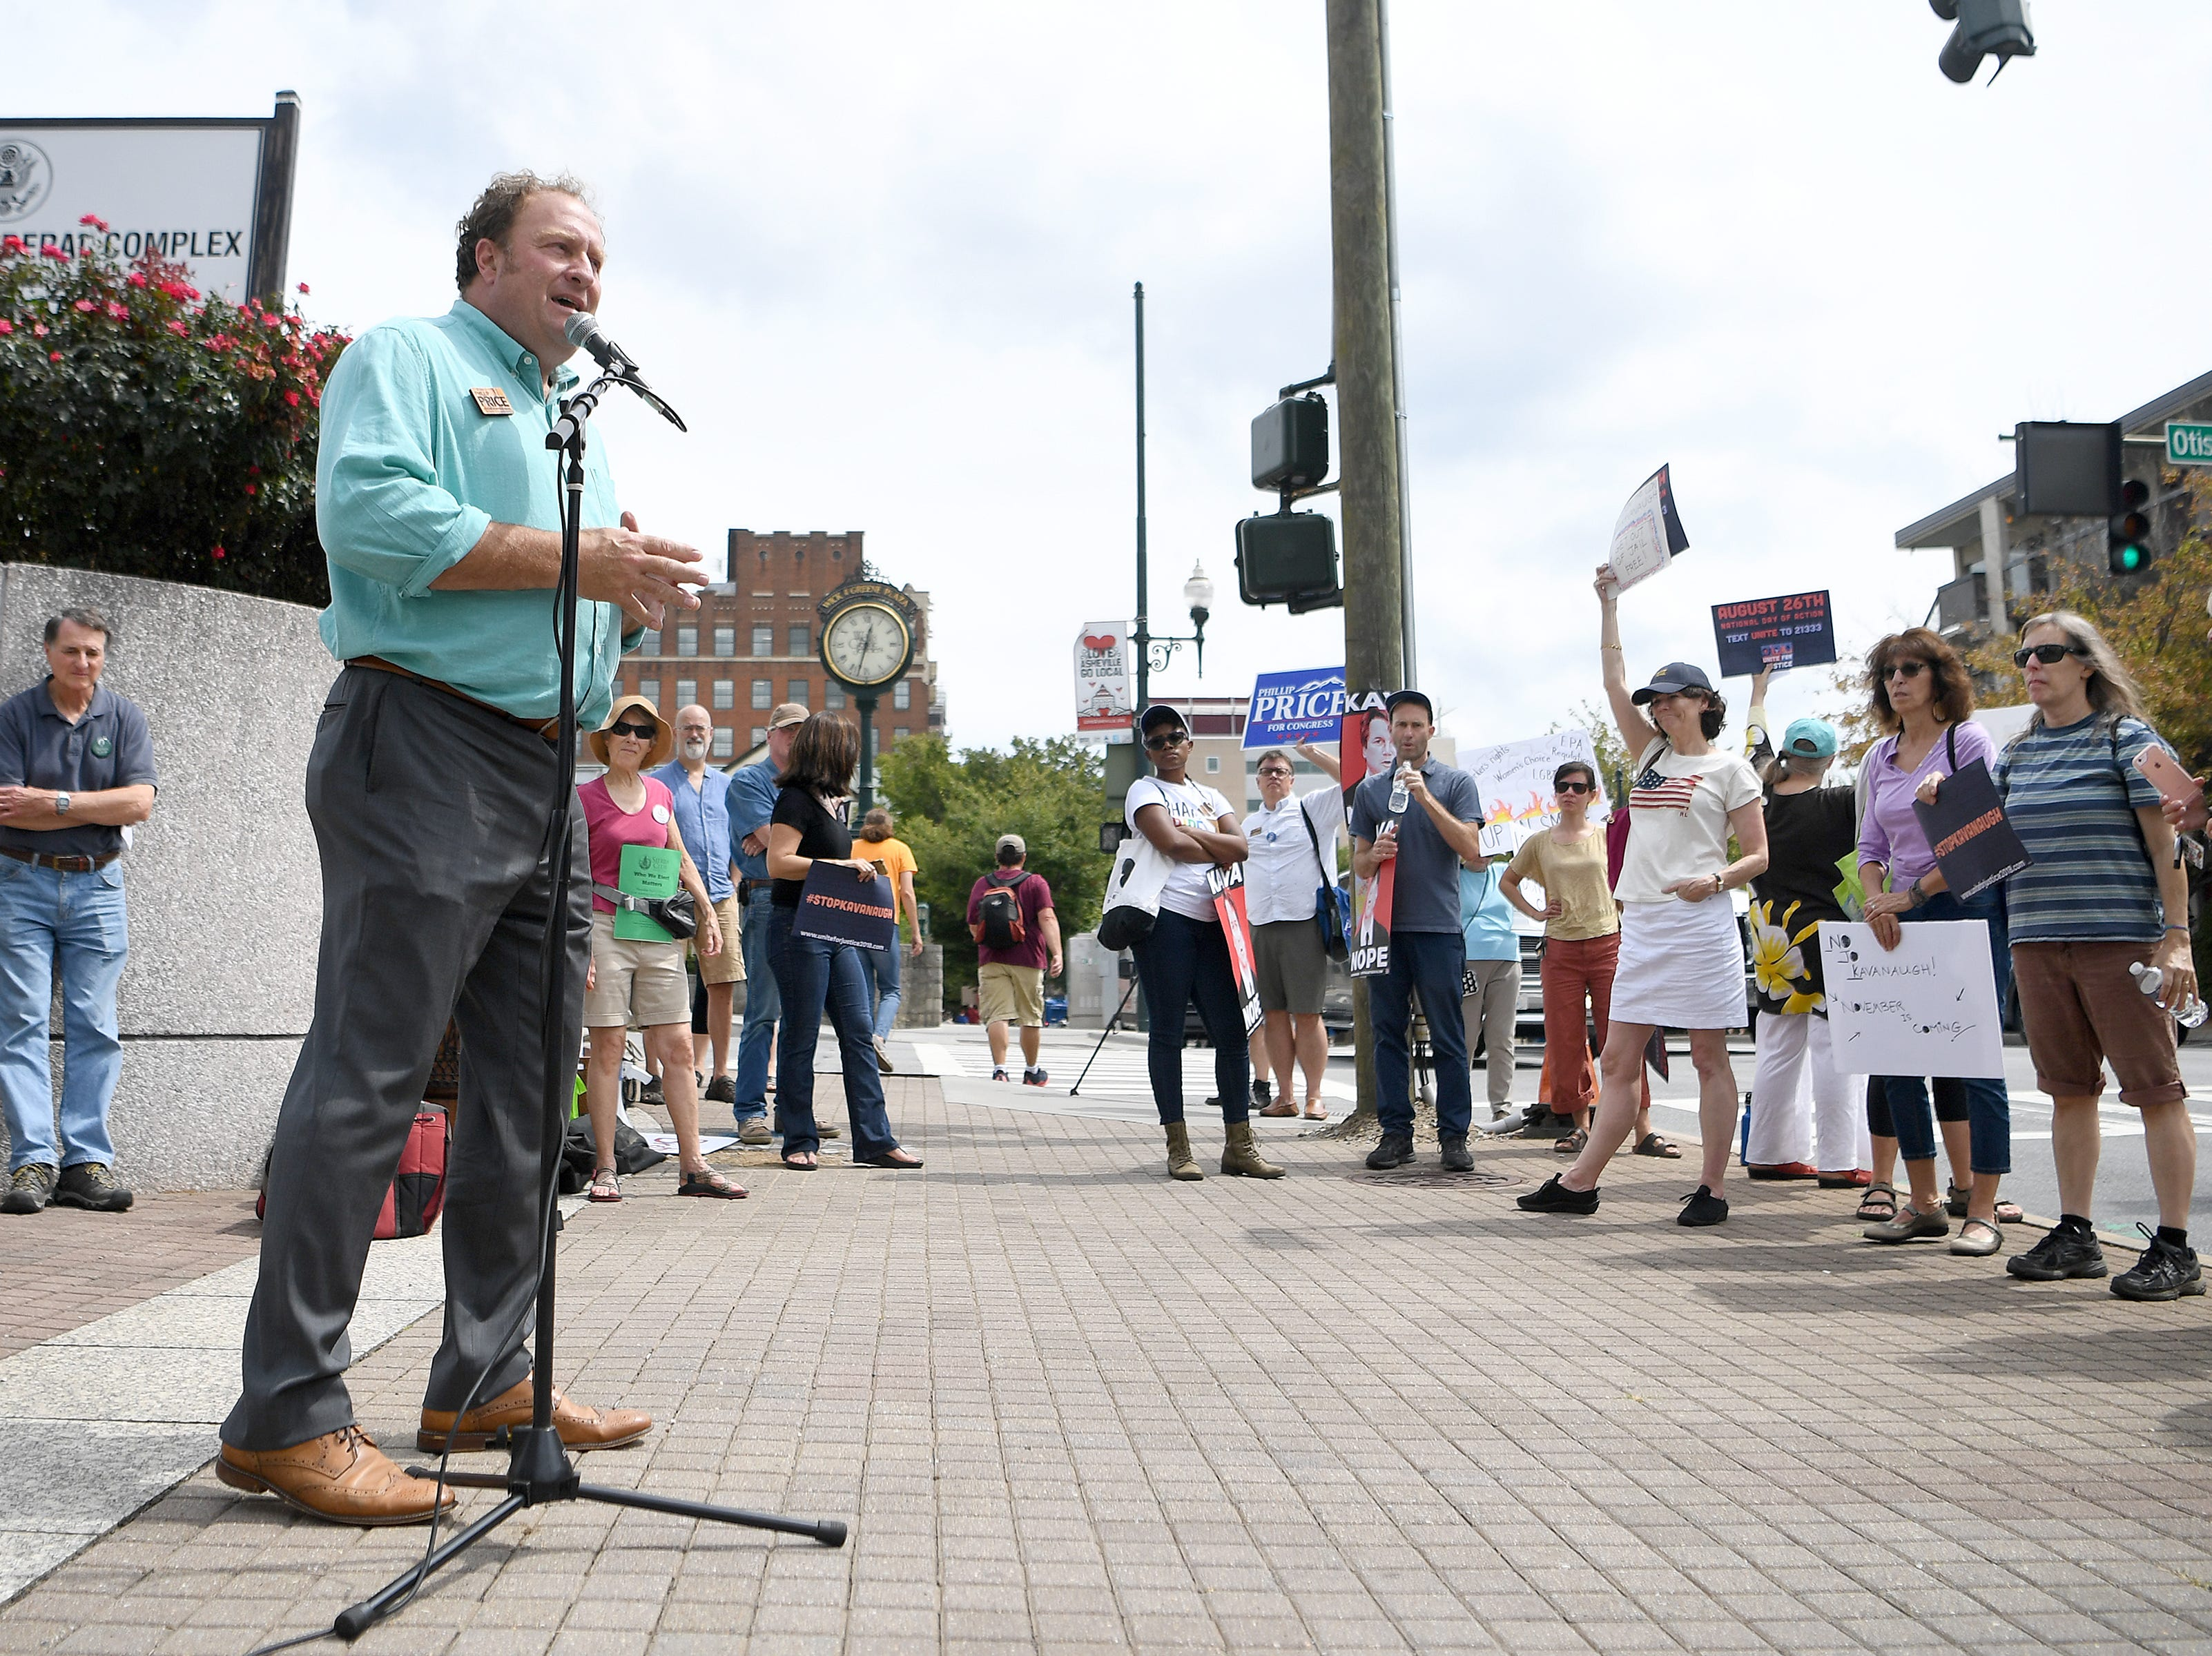 Congressional candidate Phillip Price addresses the crowd during a protest against the hearing of Supreme Court nominee Judge Brett Kavanaugh in front of the federal building downtown on Wednesday, Sept. 5, 2018.